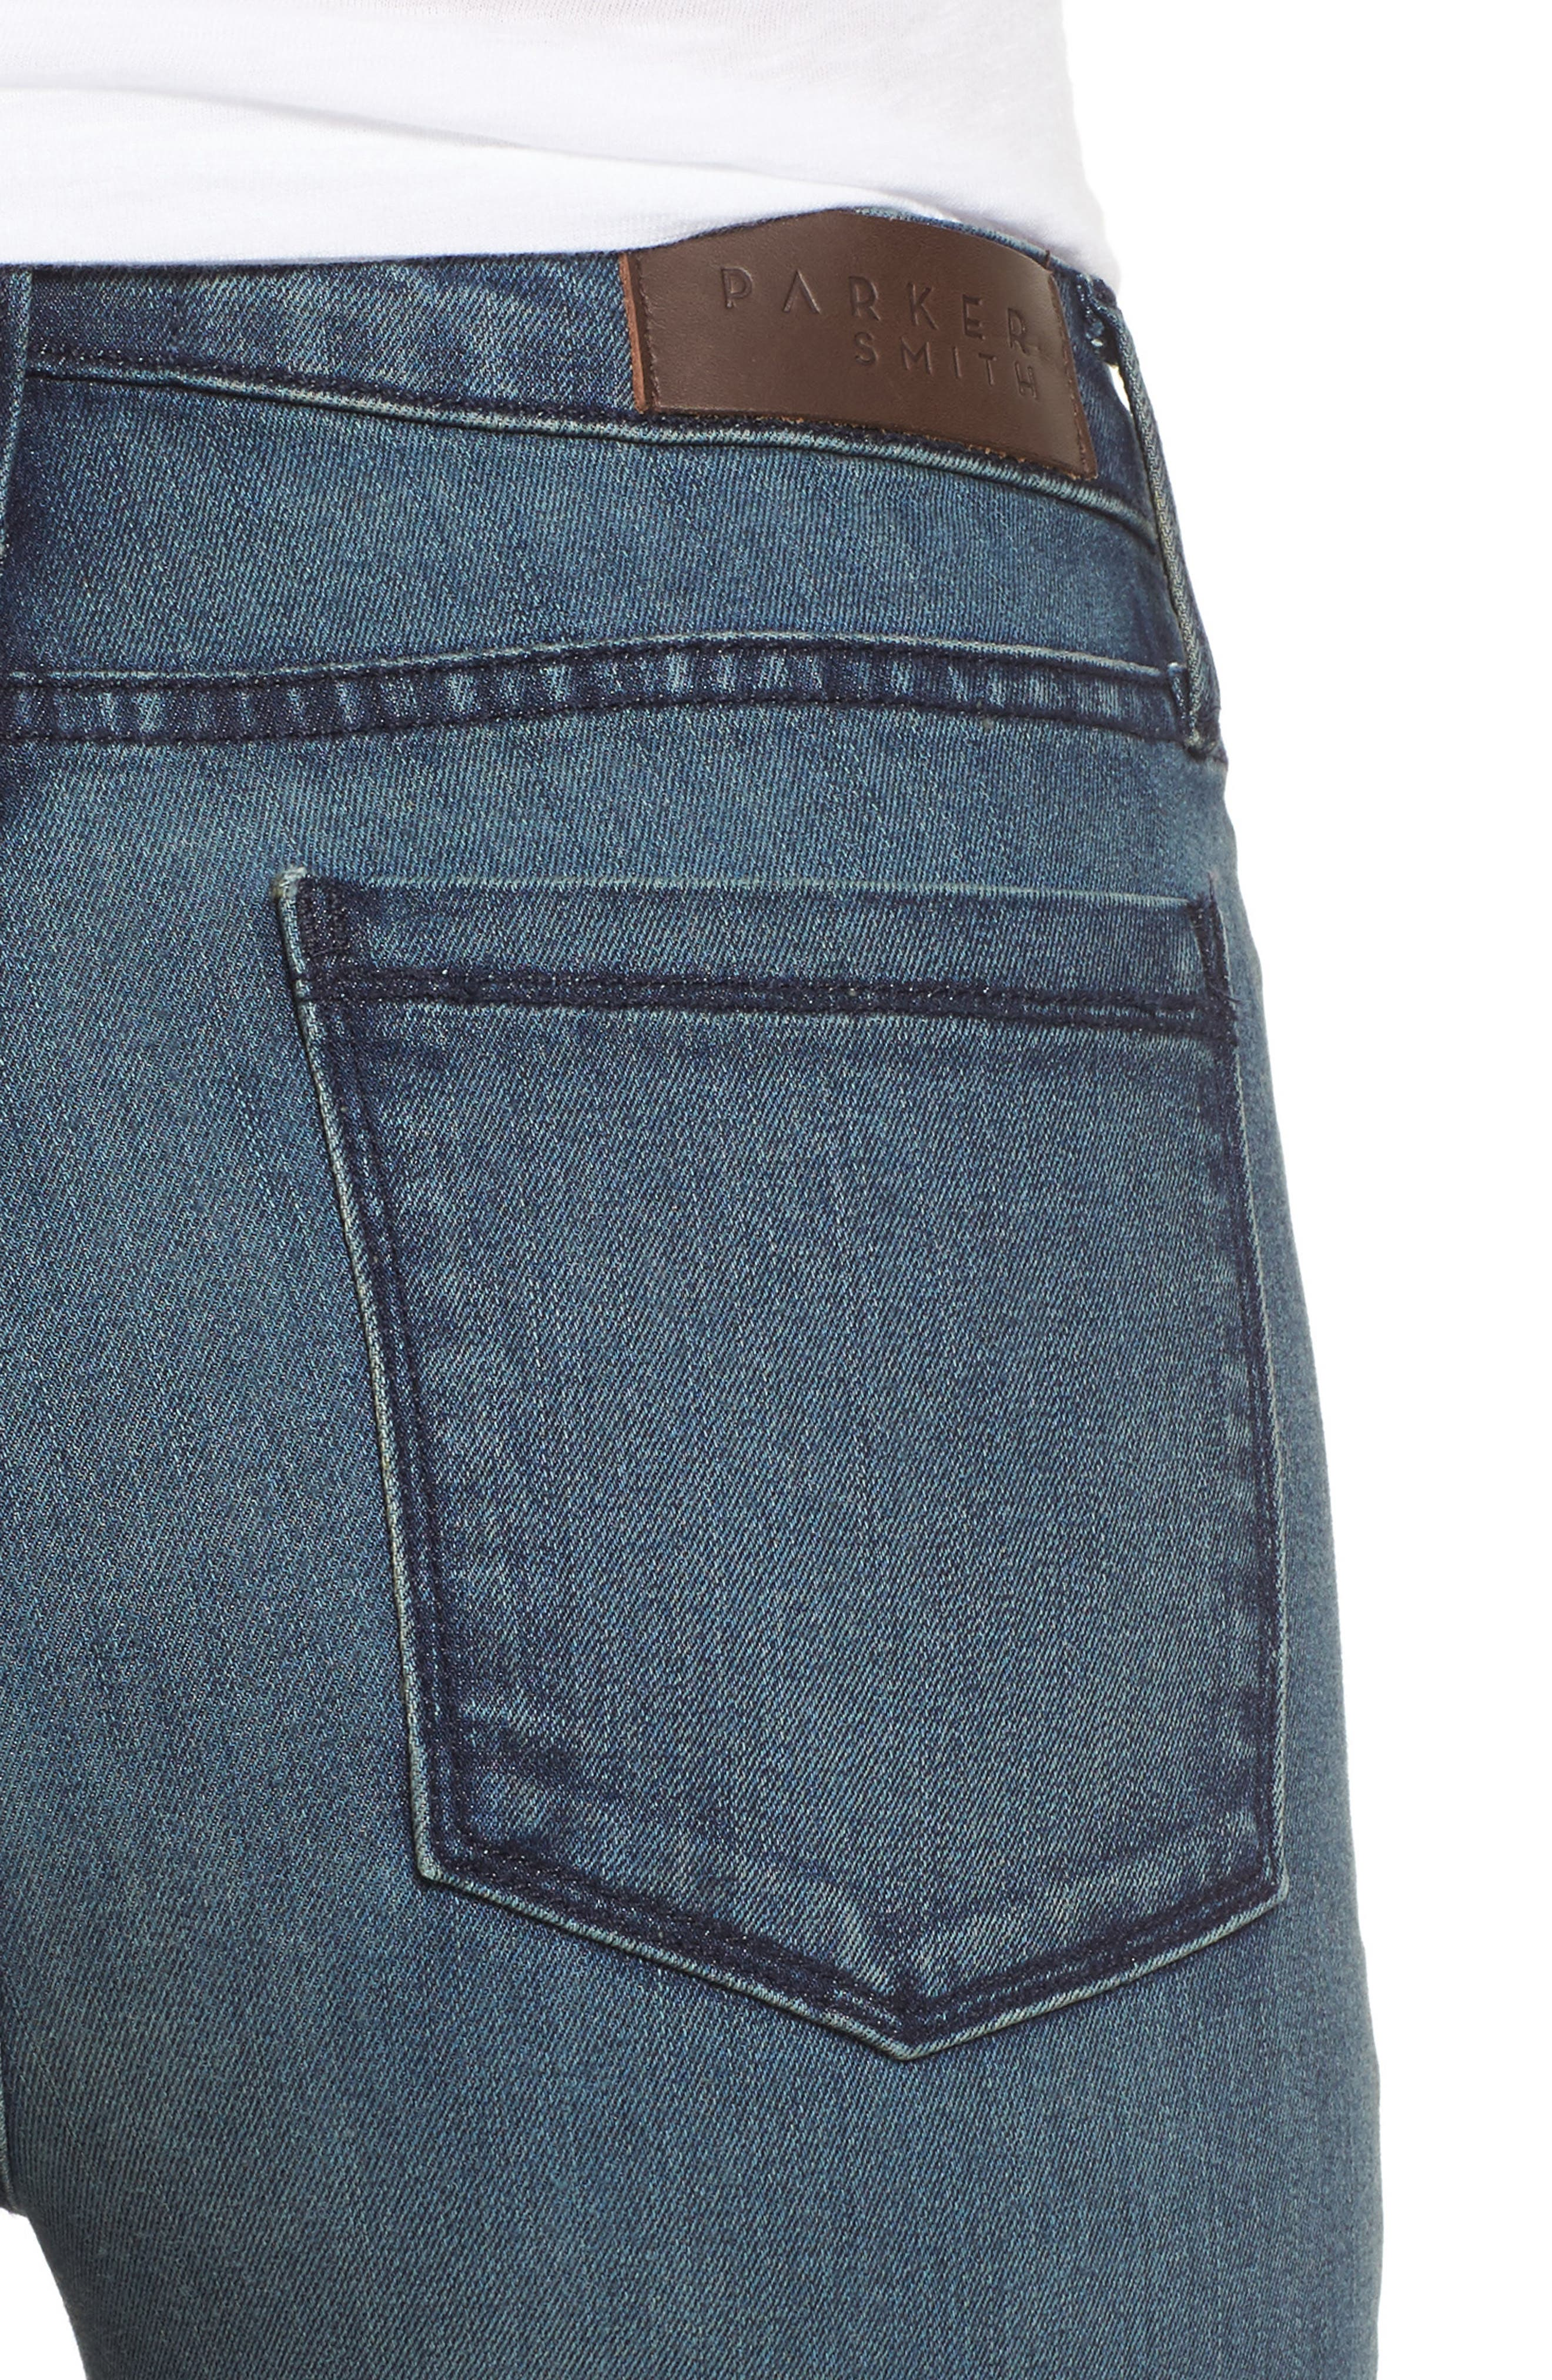 Pin-Up Straight Crop Jeans,                             Alternate thumbnail 4, color,                             424